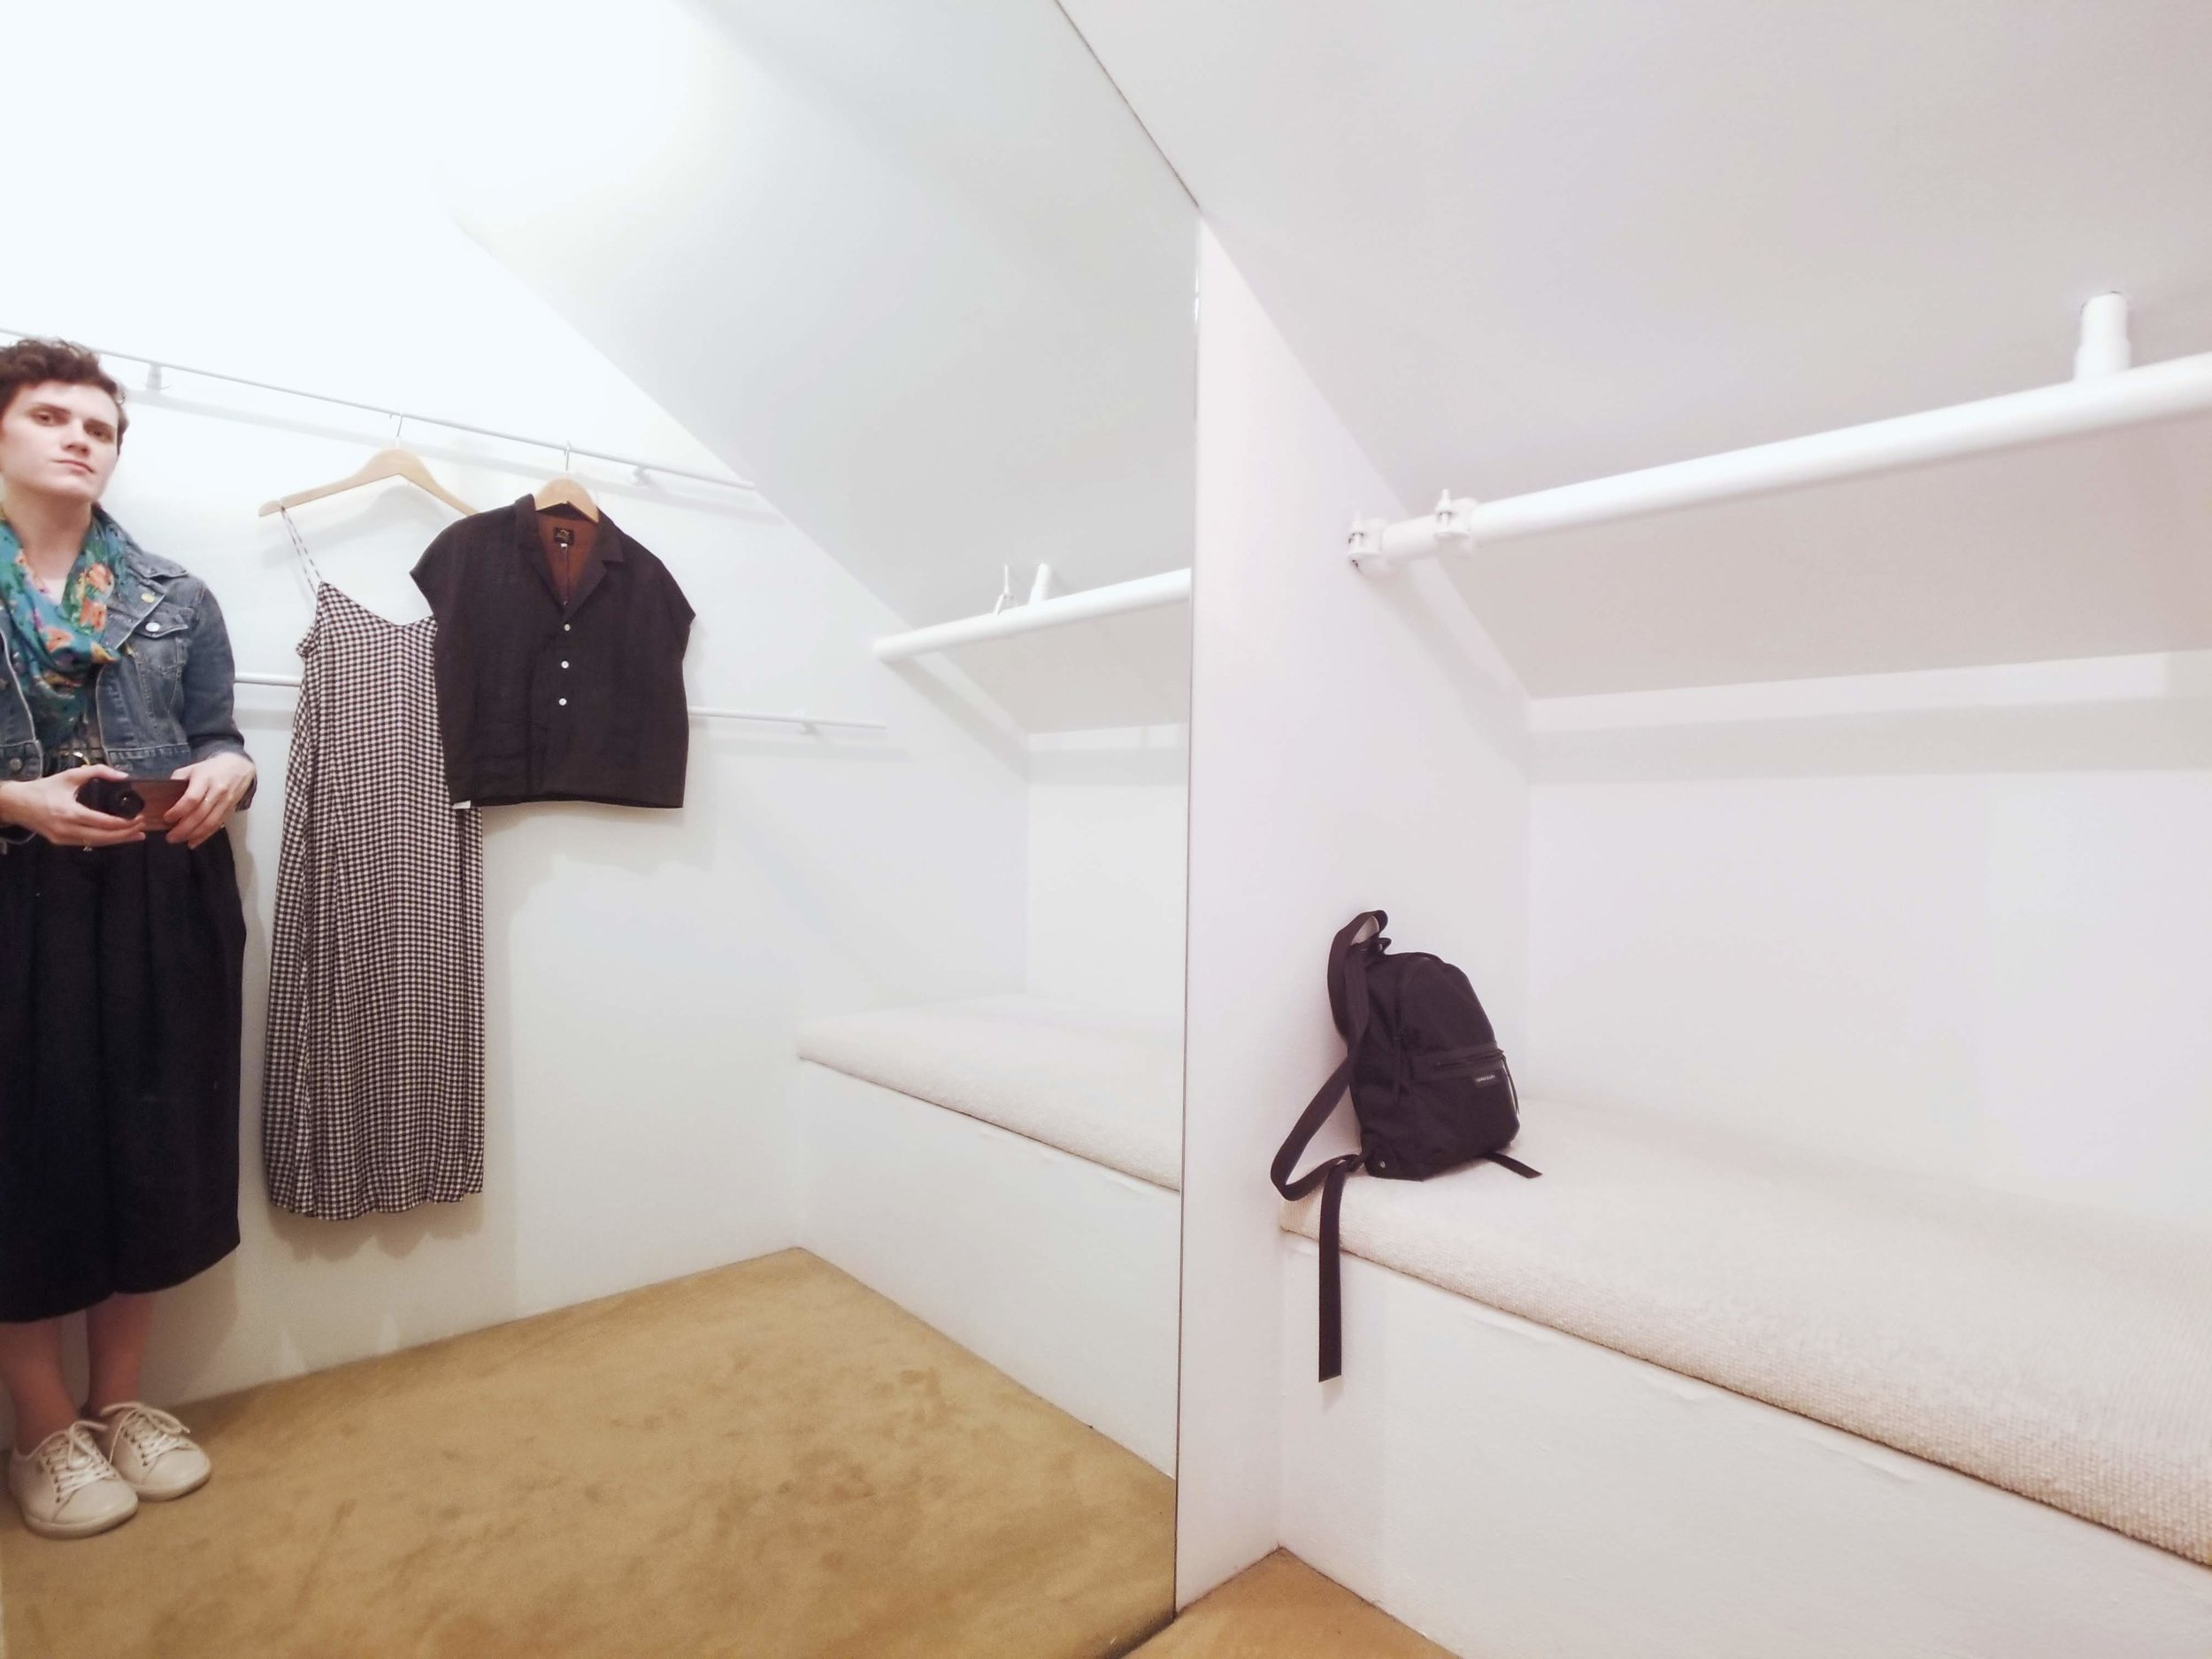 Even Totokaelo's fitting room was cool and minimal.